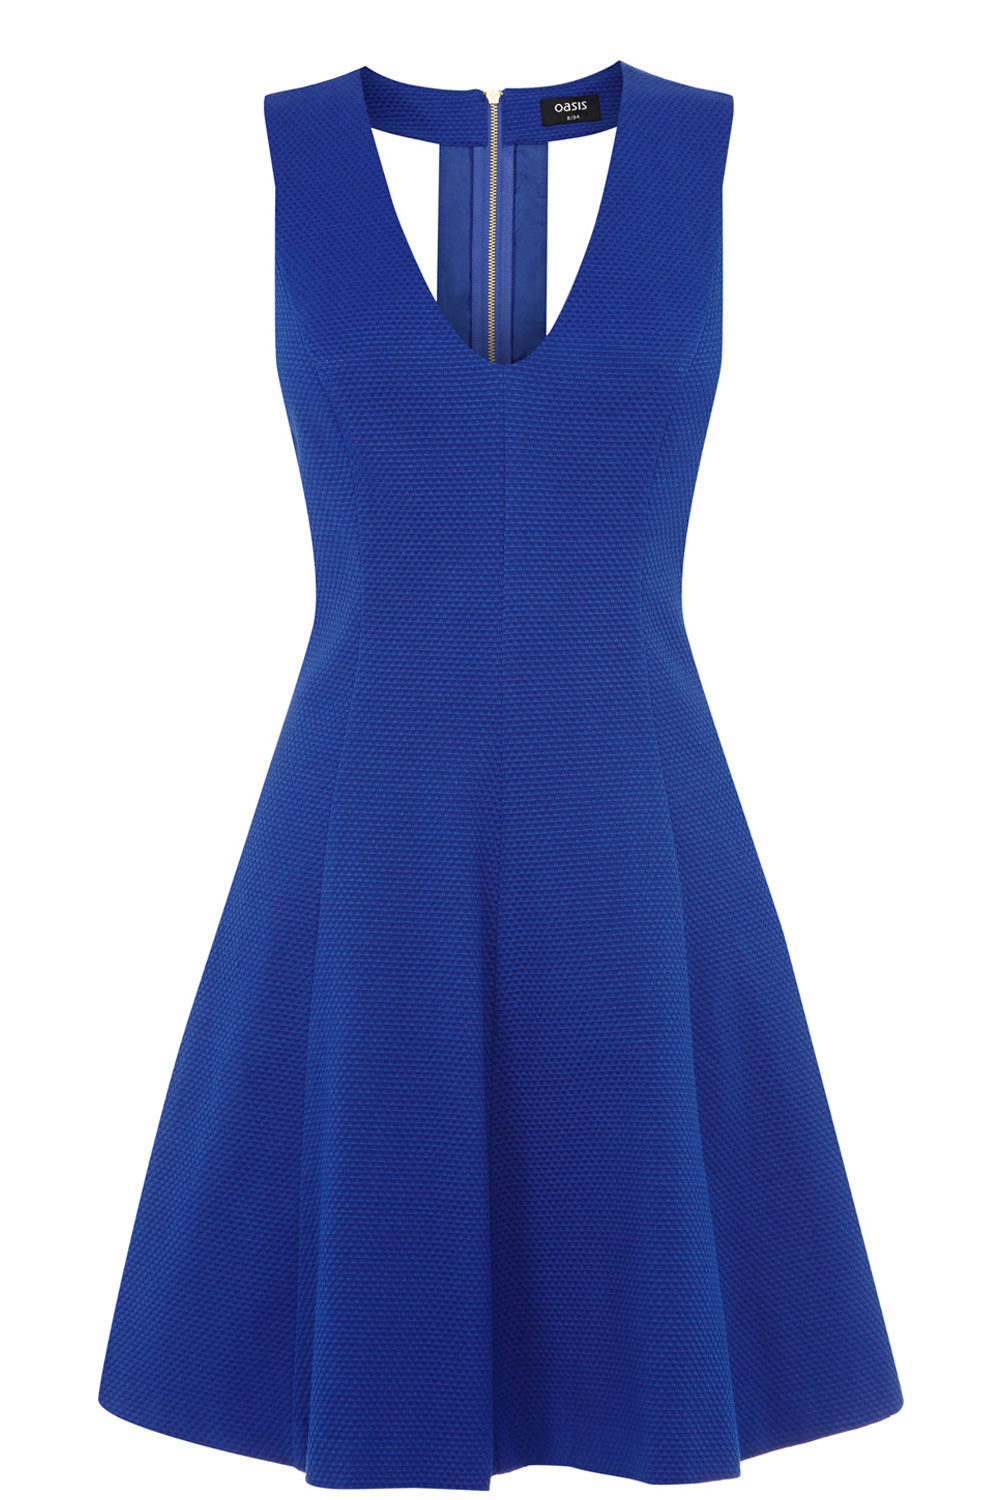 Textured Jacquard Skater Dress | Blue | Oasis Stores